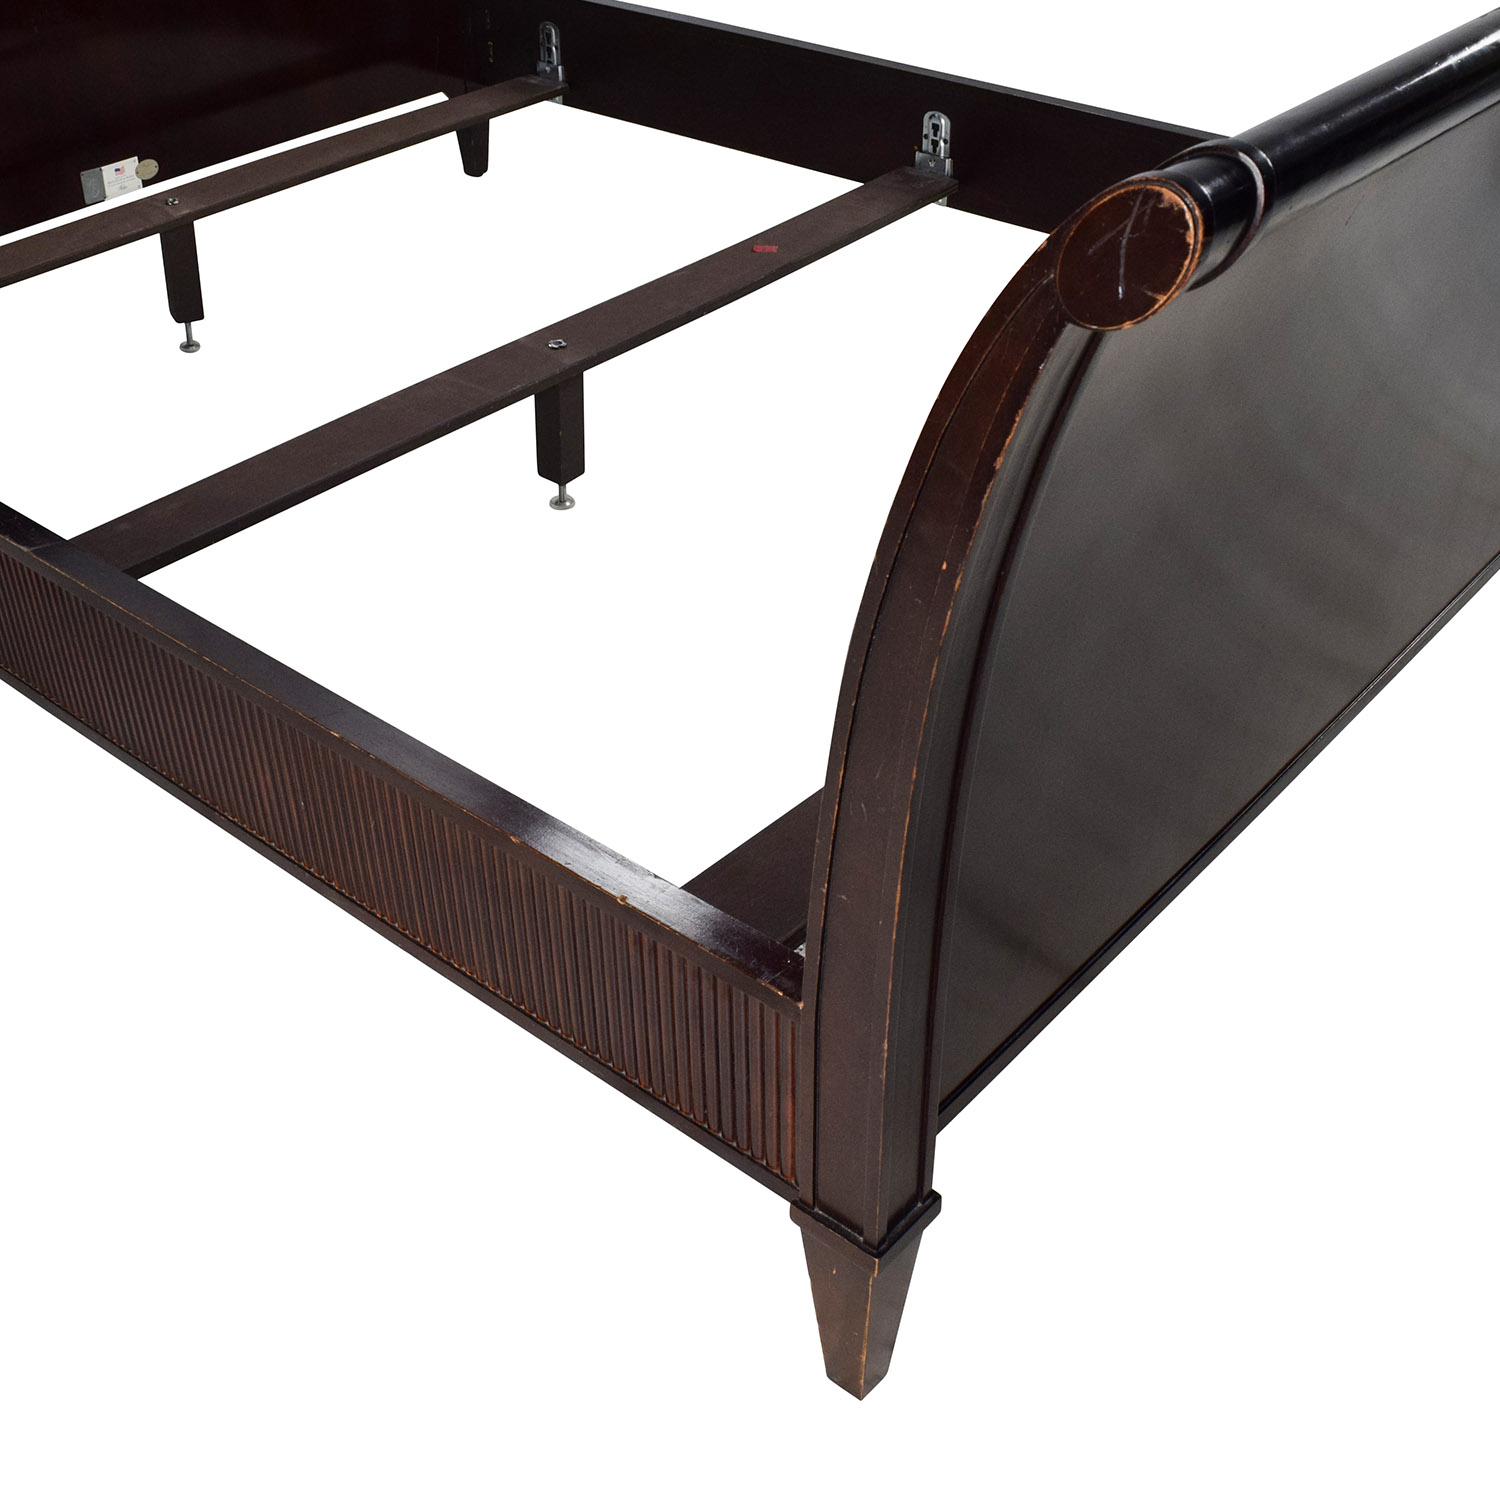 90 OFF Barbara Barry Barbara Barry Baker Queen Sleigh Bed Beds